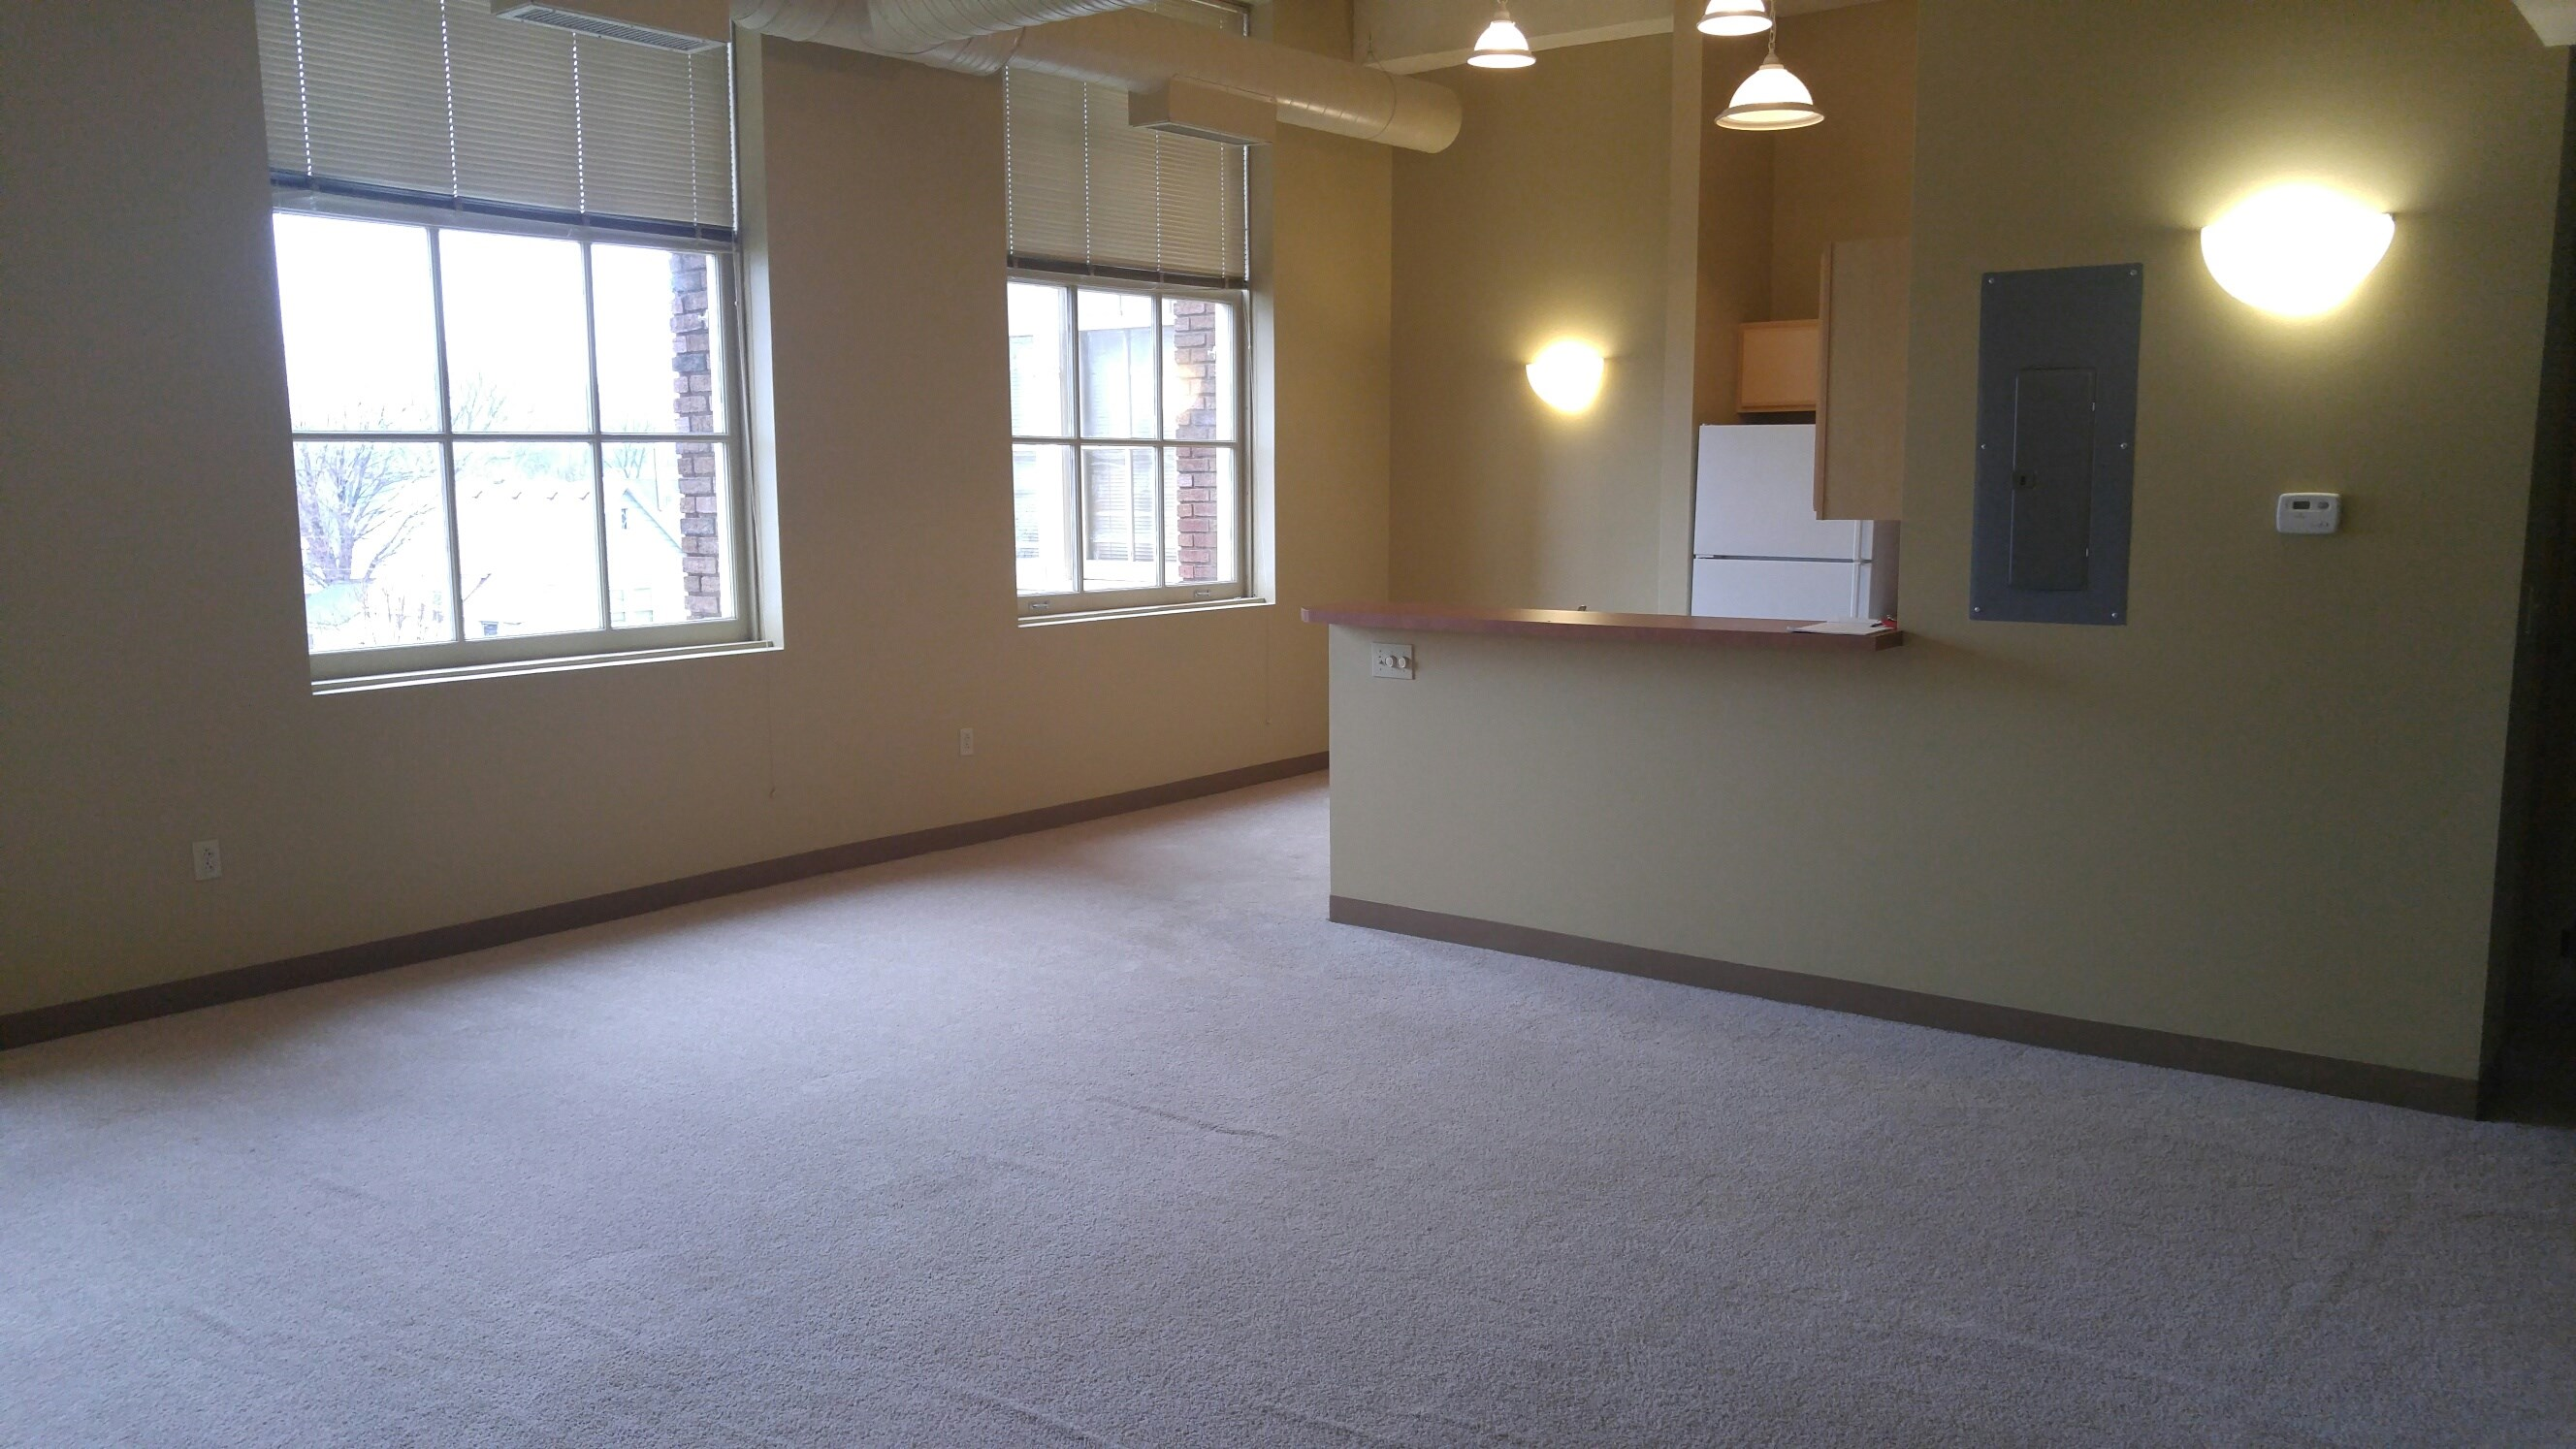 Spacious Lofts for rent in Clevelan